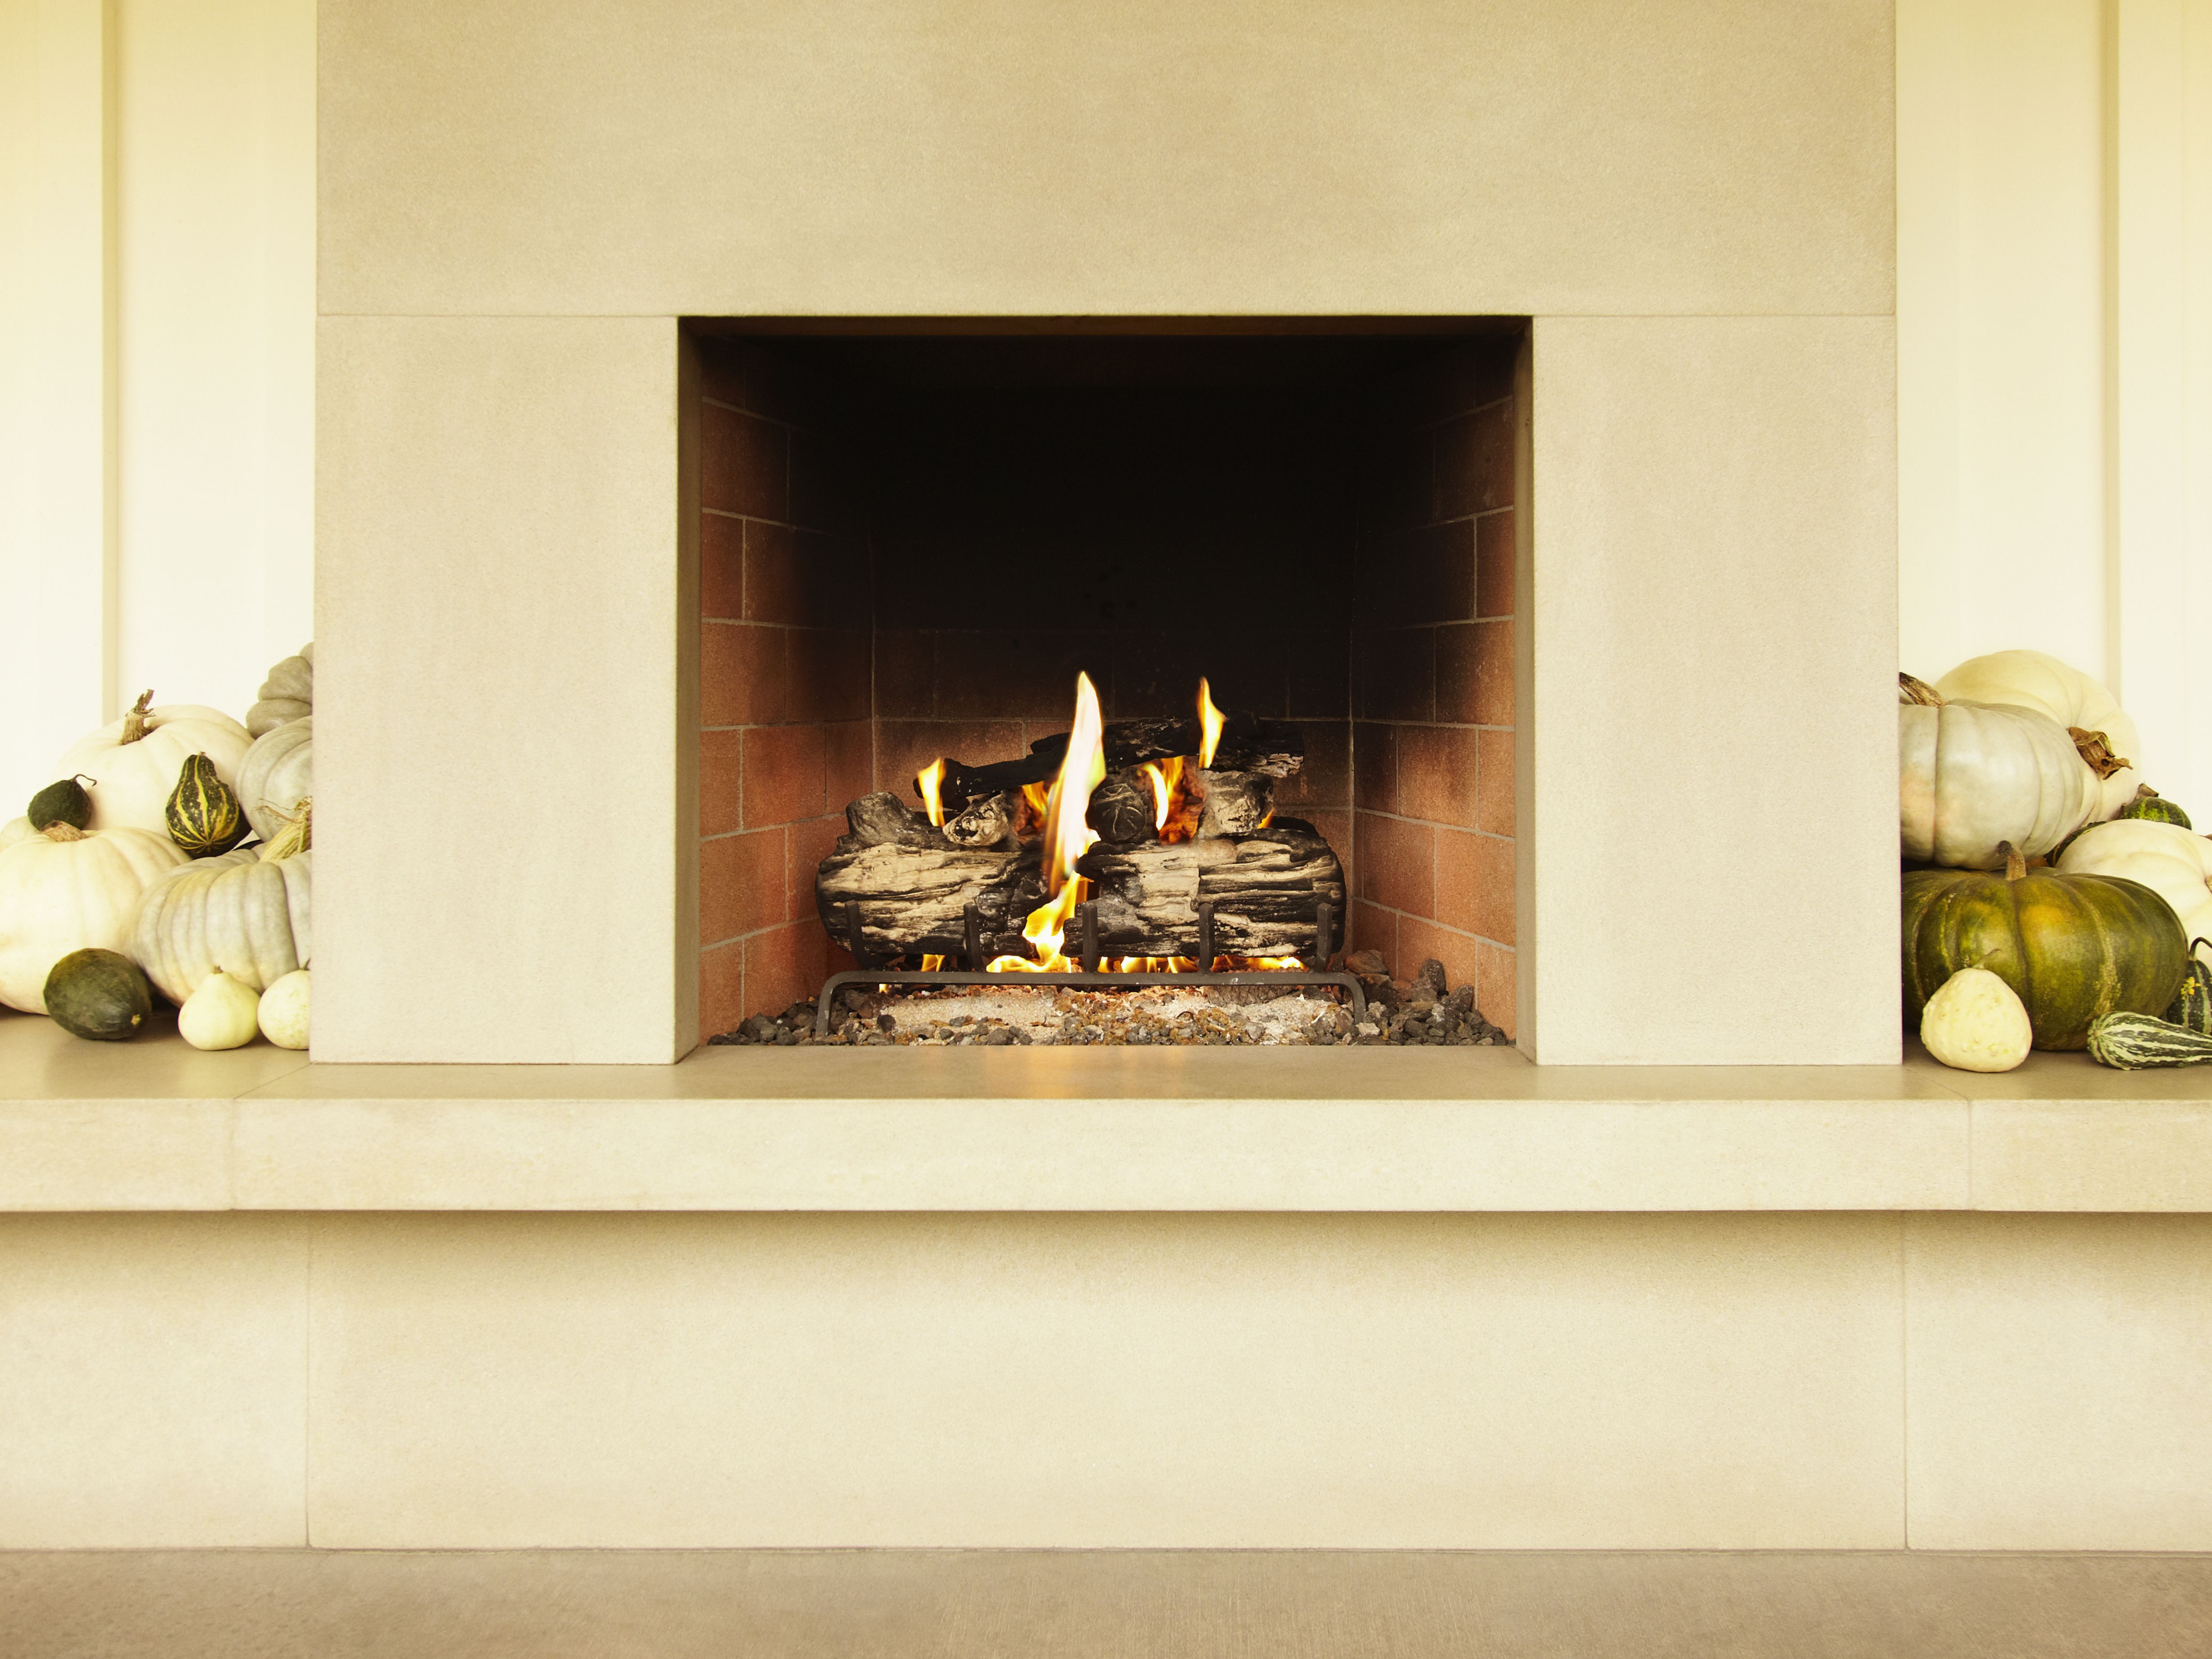 Wondrous Ventless Gas Fireplaces What To Know Before You Buy Interior Design Ideas Ghosoteloinfo